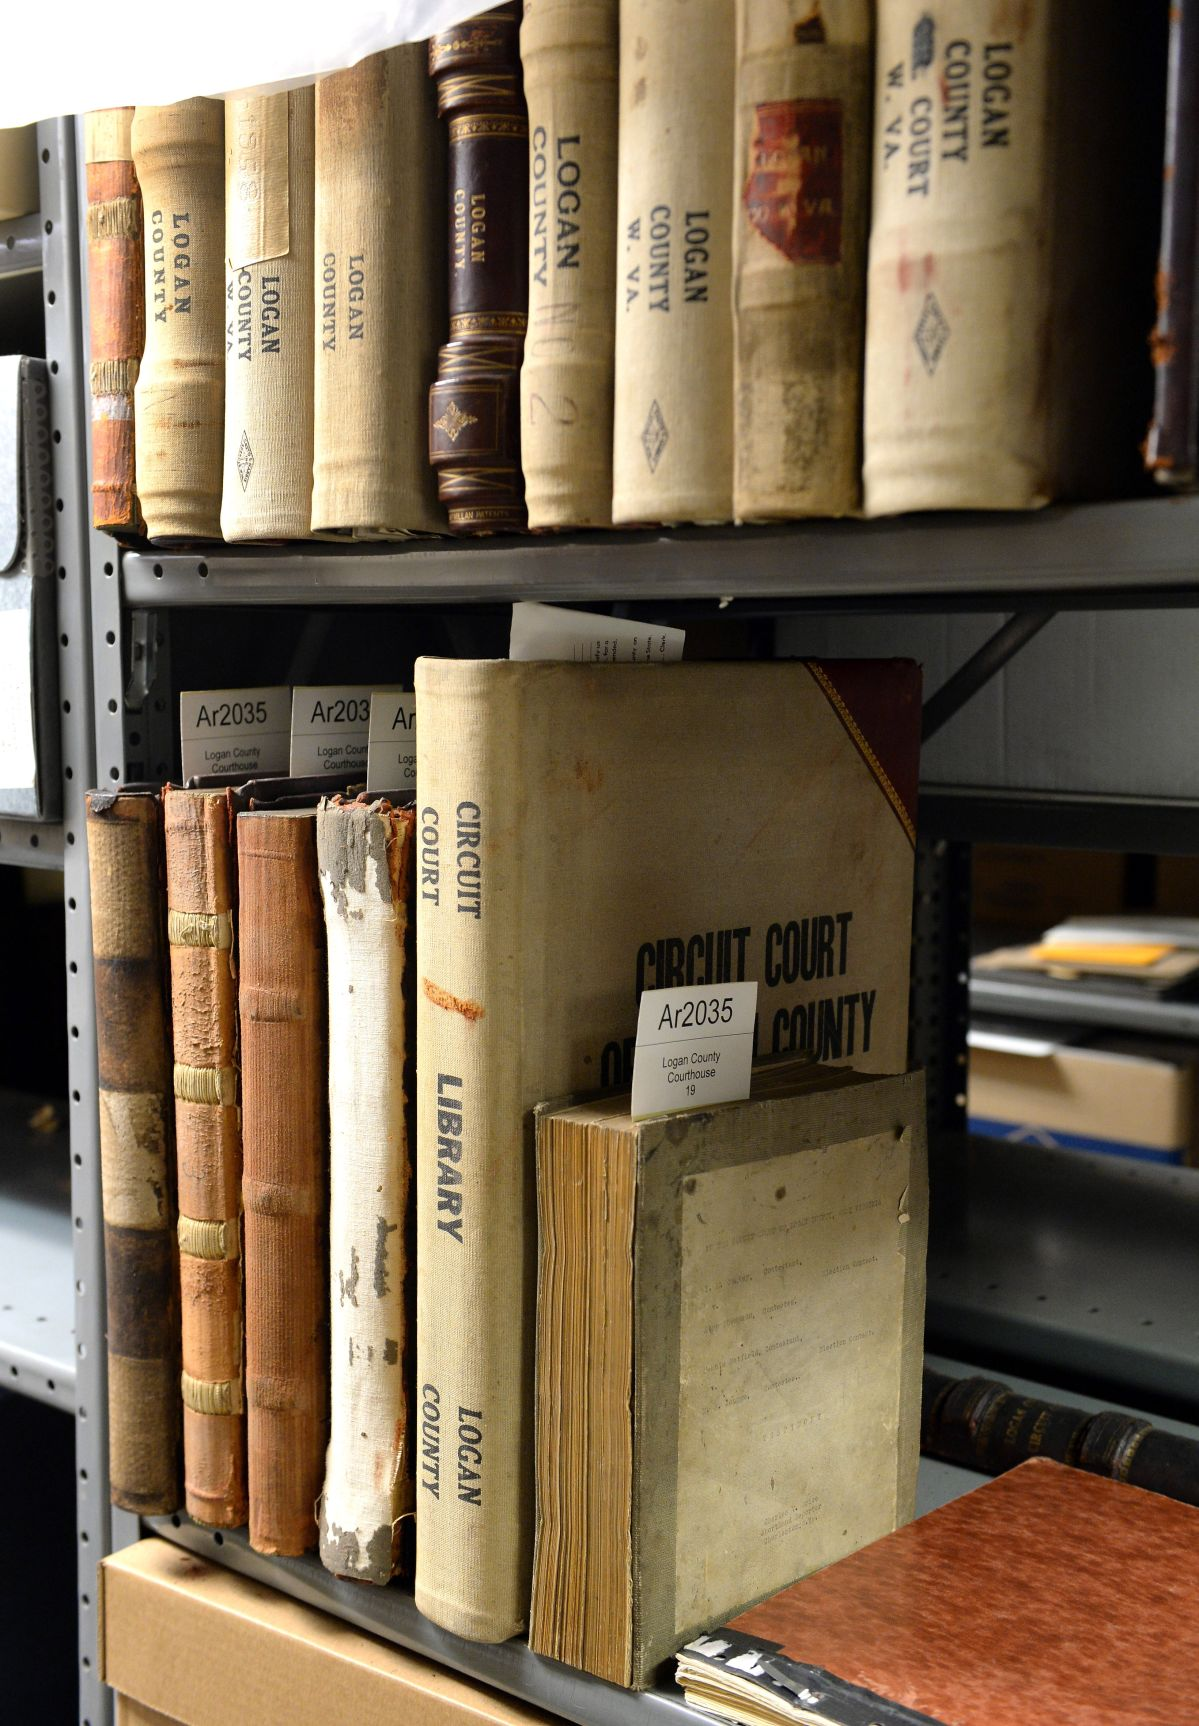 Electronic court records about practicality and preservation